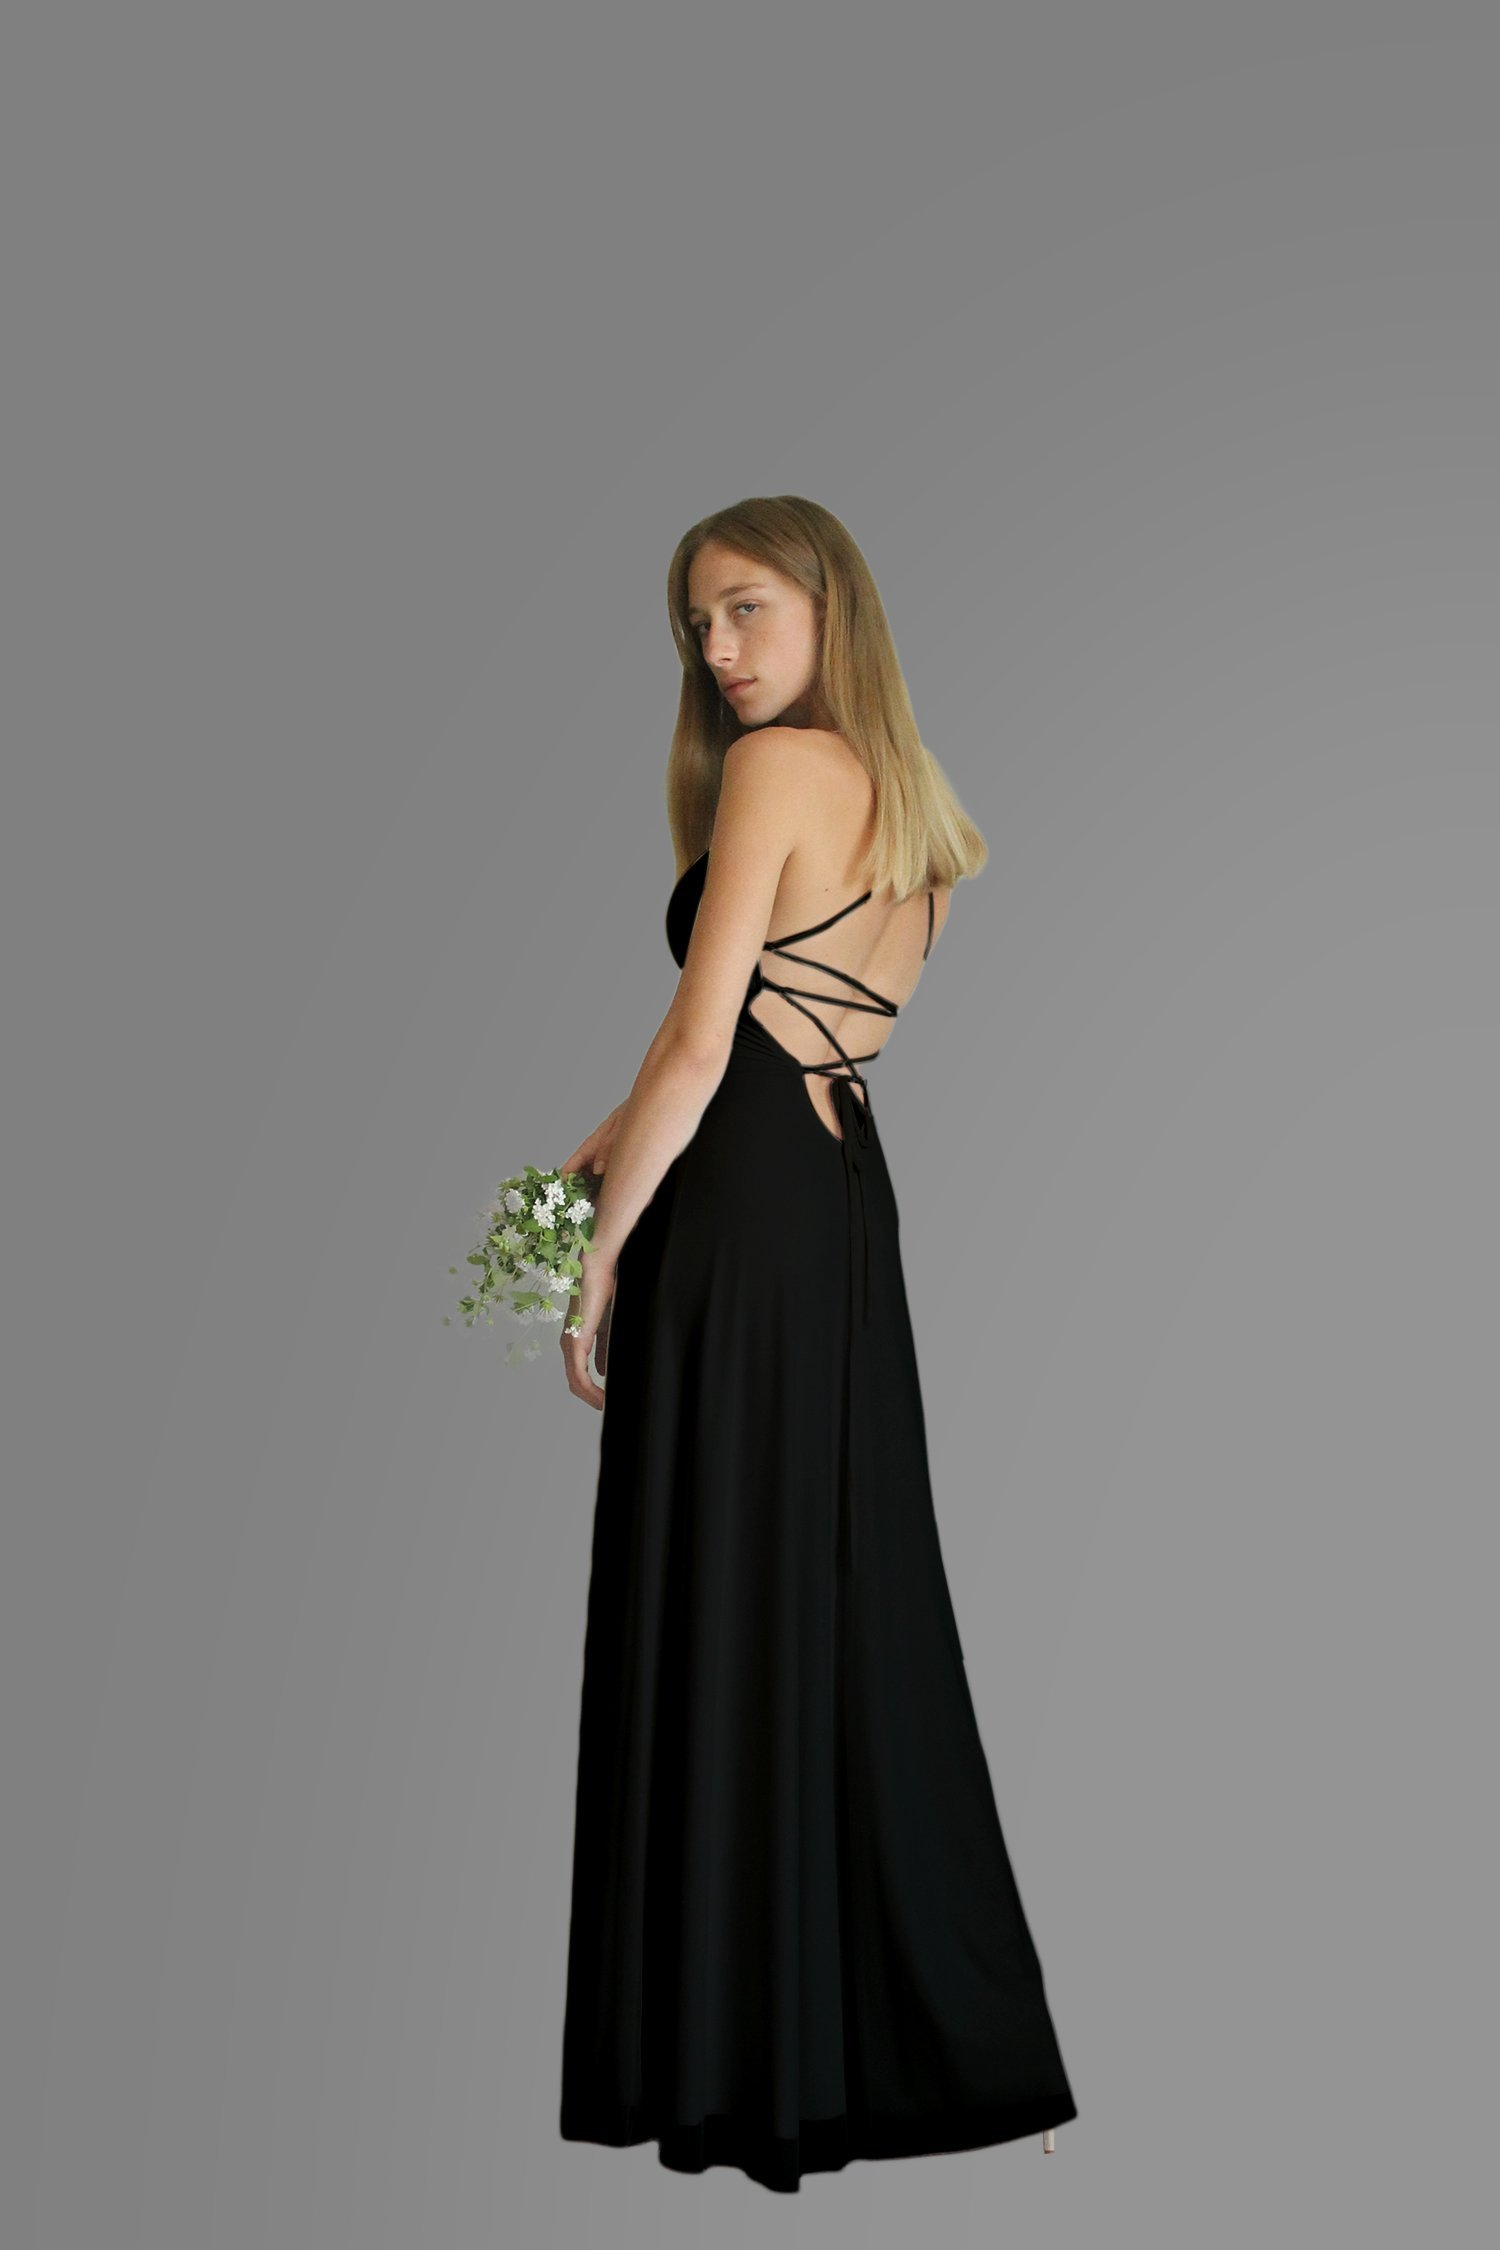 Women's Dress, Black Evening Dress, Size S, Maxi Long Dress for Wedding or Bridesmaid, Chiffon Lycra Classic Gown